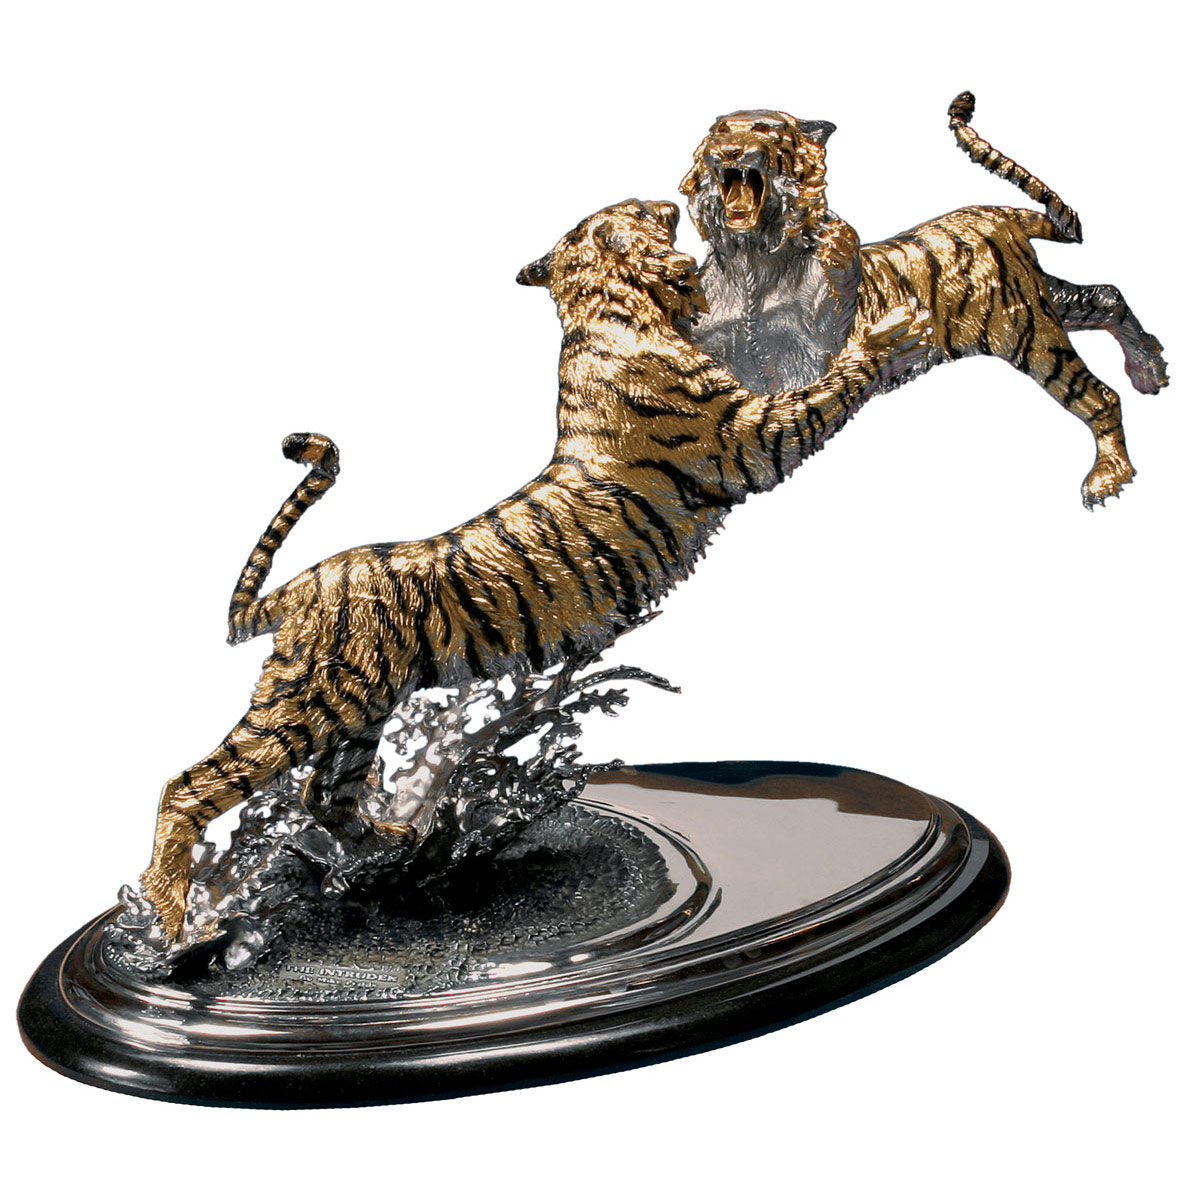 The Intruder Gold Bronze Bengal Tiger Sculpture Art